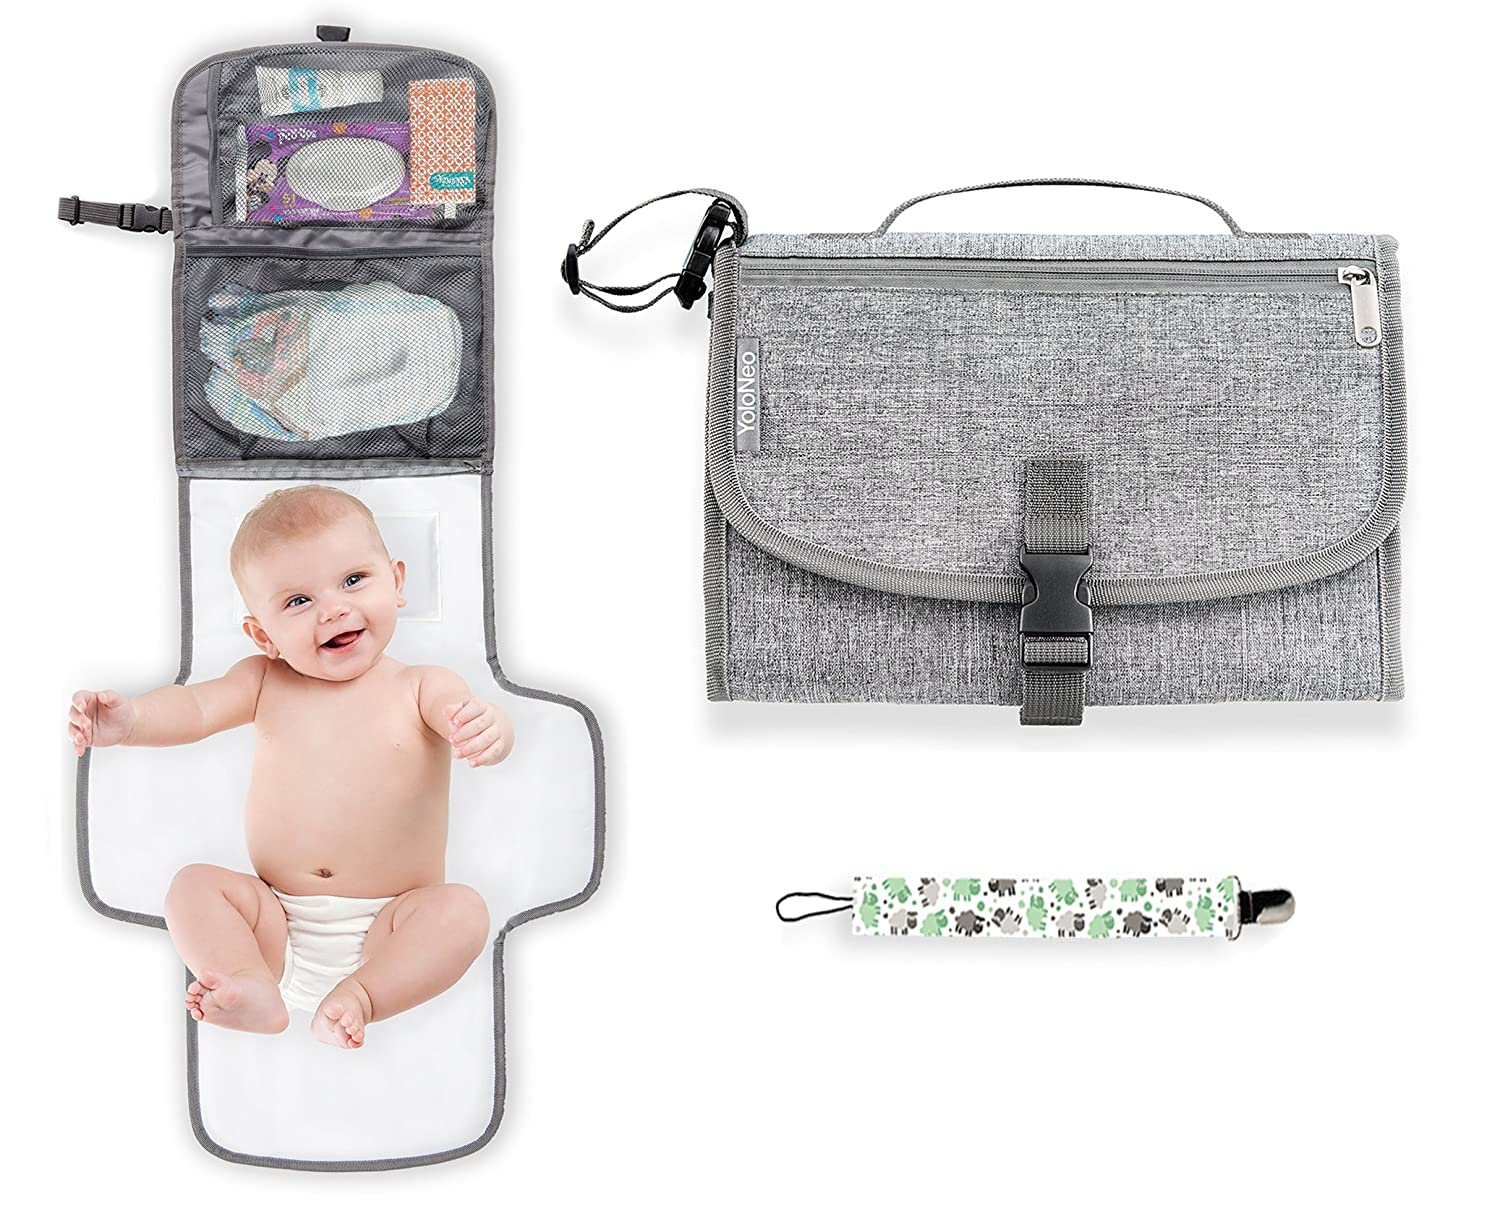 YoloNeo Portable Changing Pad | Diaper Clutch | Travel Changing Pad | Baby Shower | Lightweight Wipeable Detachable Mat Station Kit | Head Cushion and 3 Pockets | Bonus Pacifier Holder | Grey White